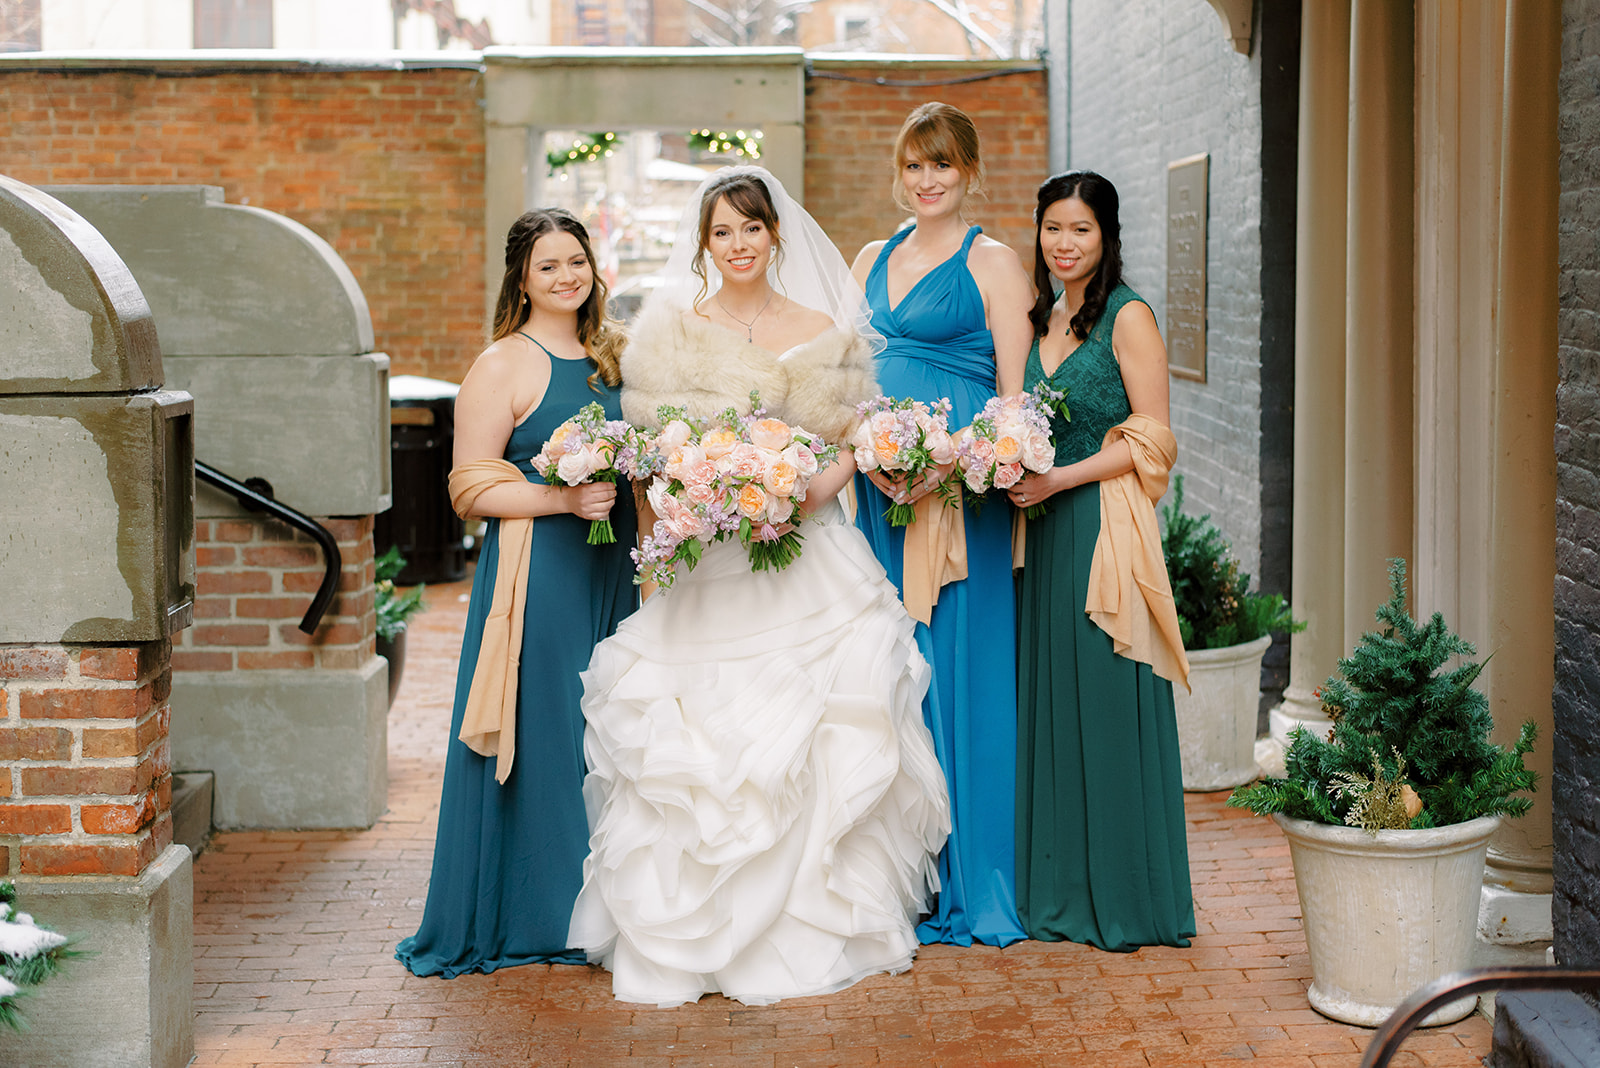 cait-isaiah-wedding-laura-katie-photography-593.jpg